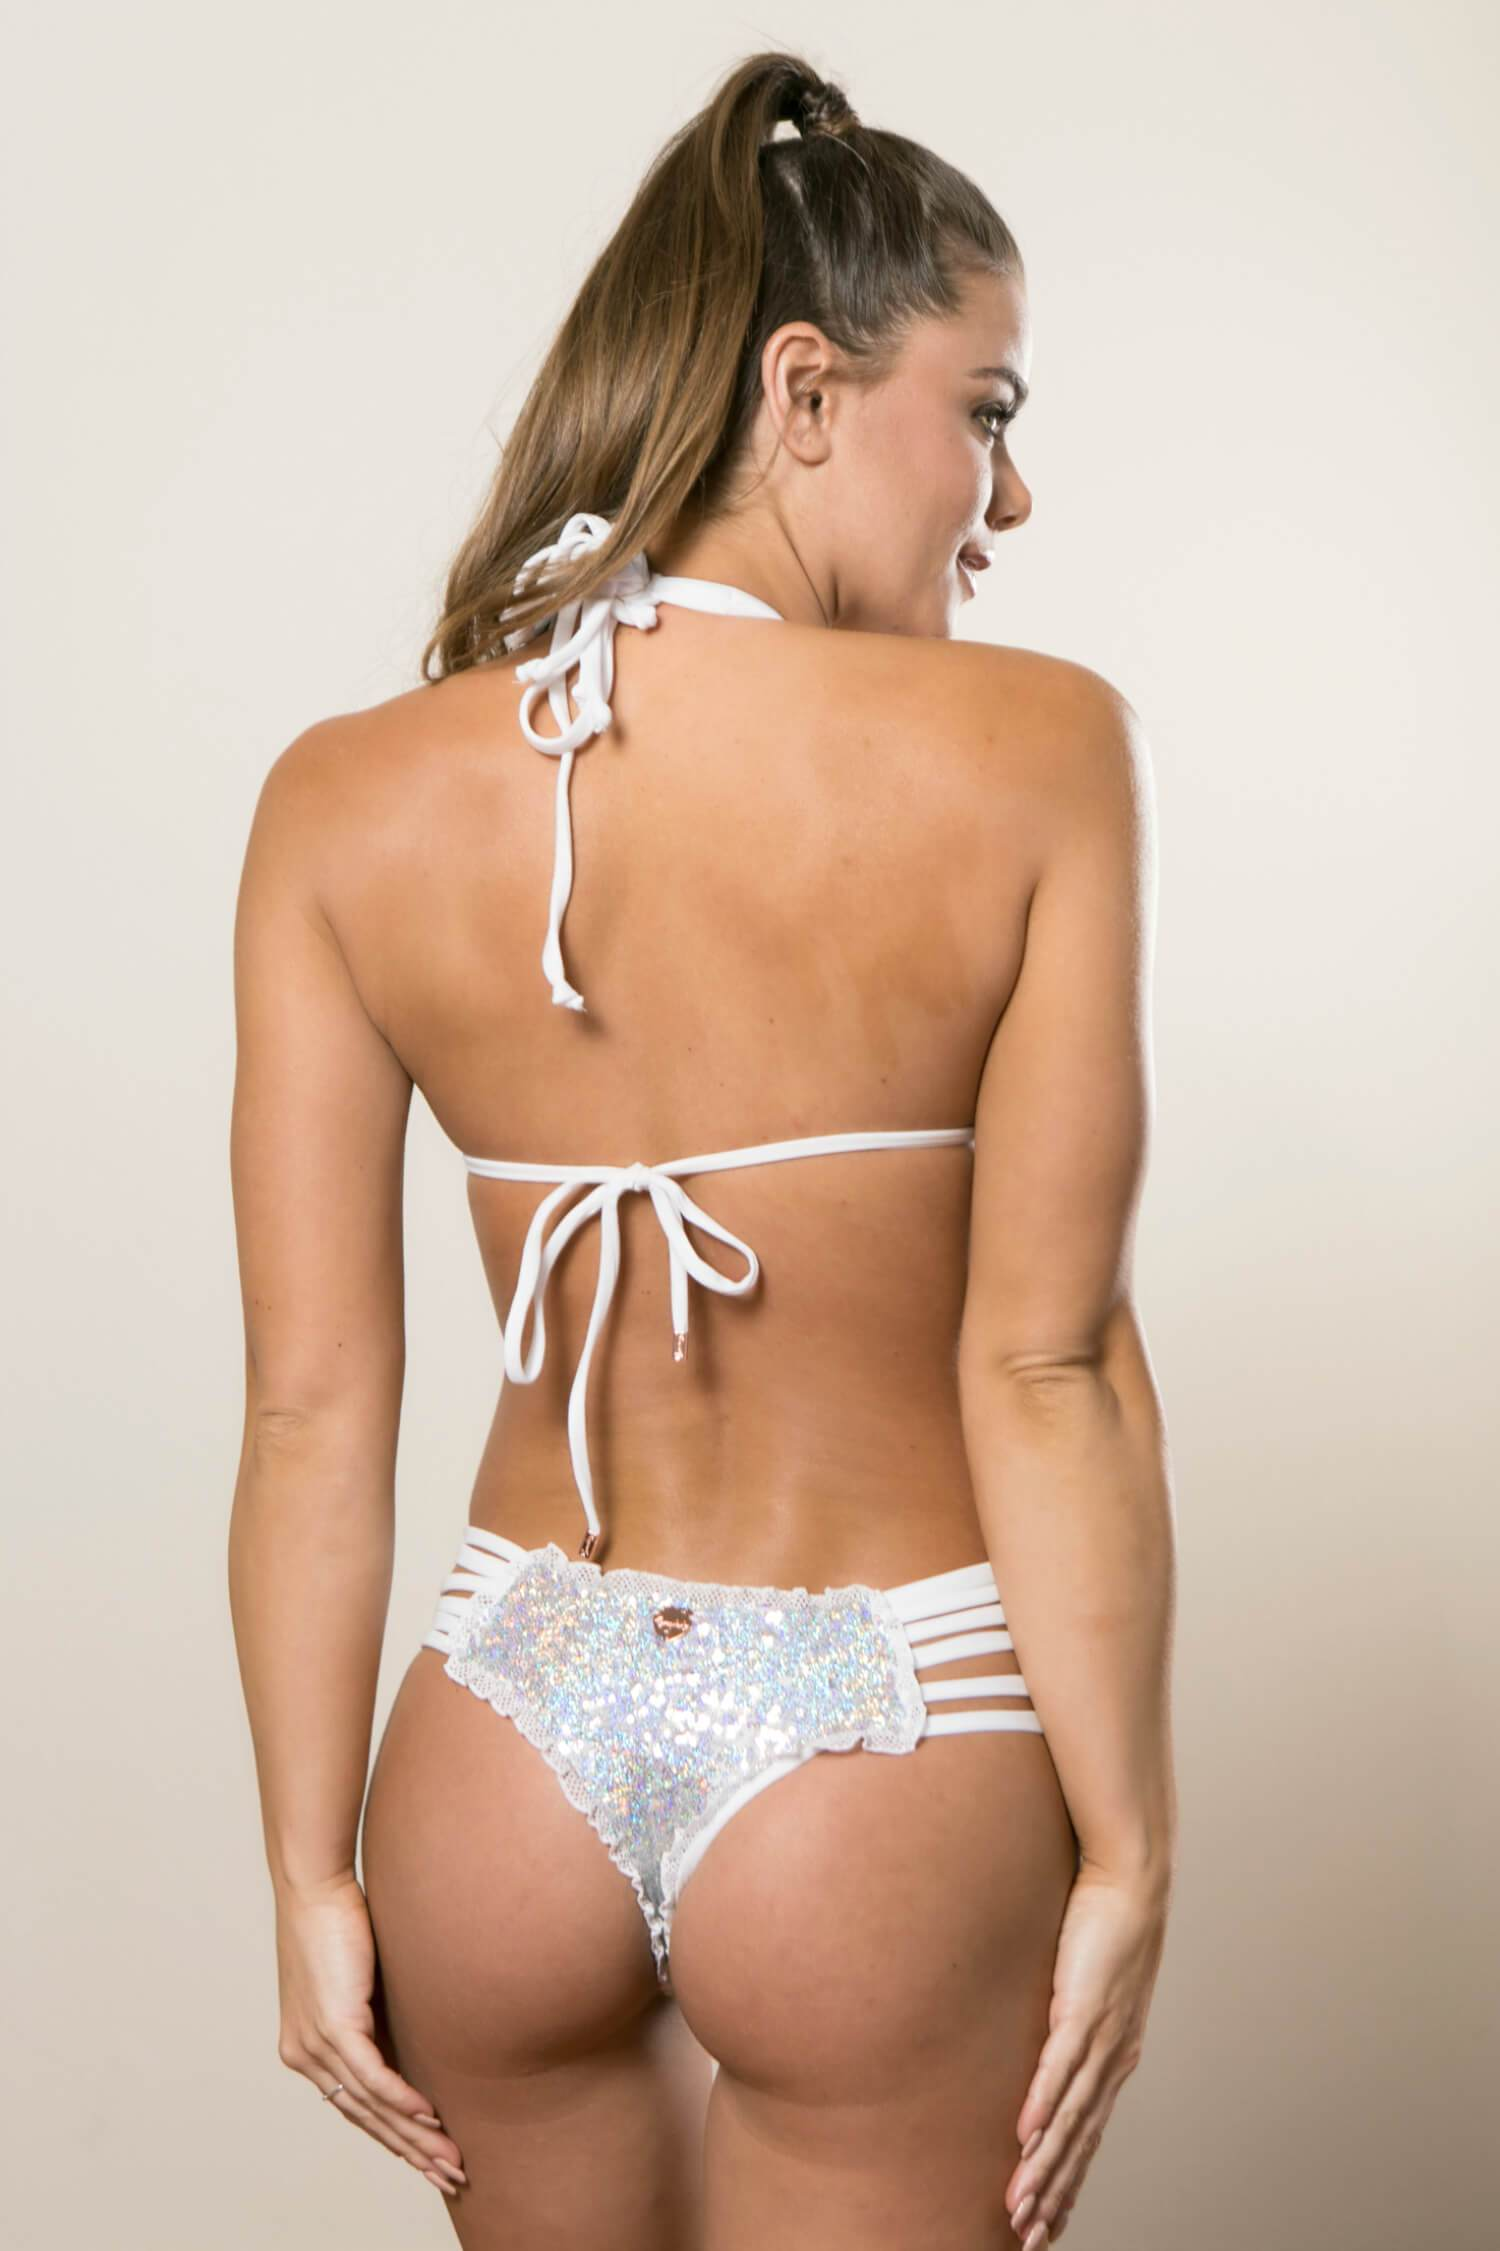 Iridescent Sequin and White Bikini - Bridal Cheeky Swimsuit Set